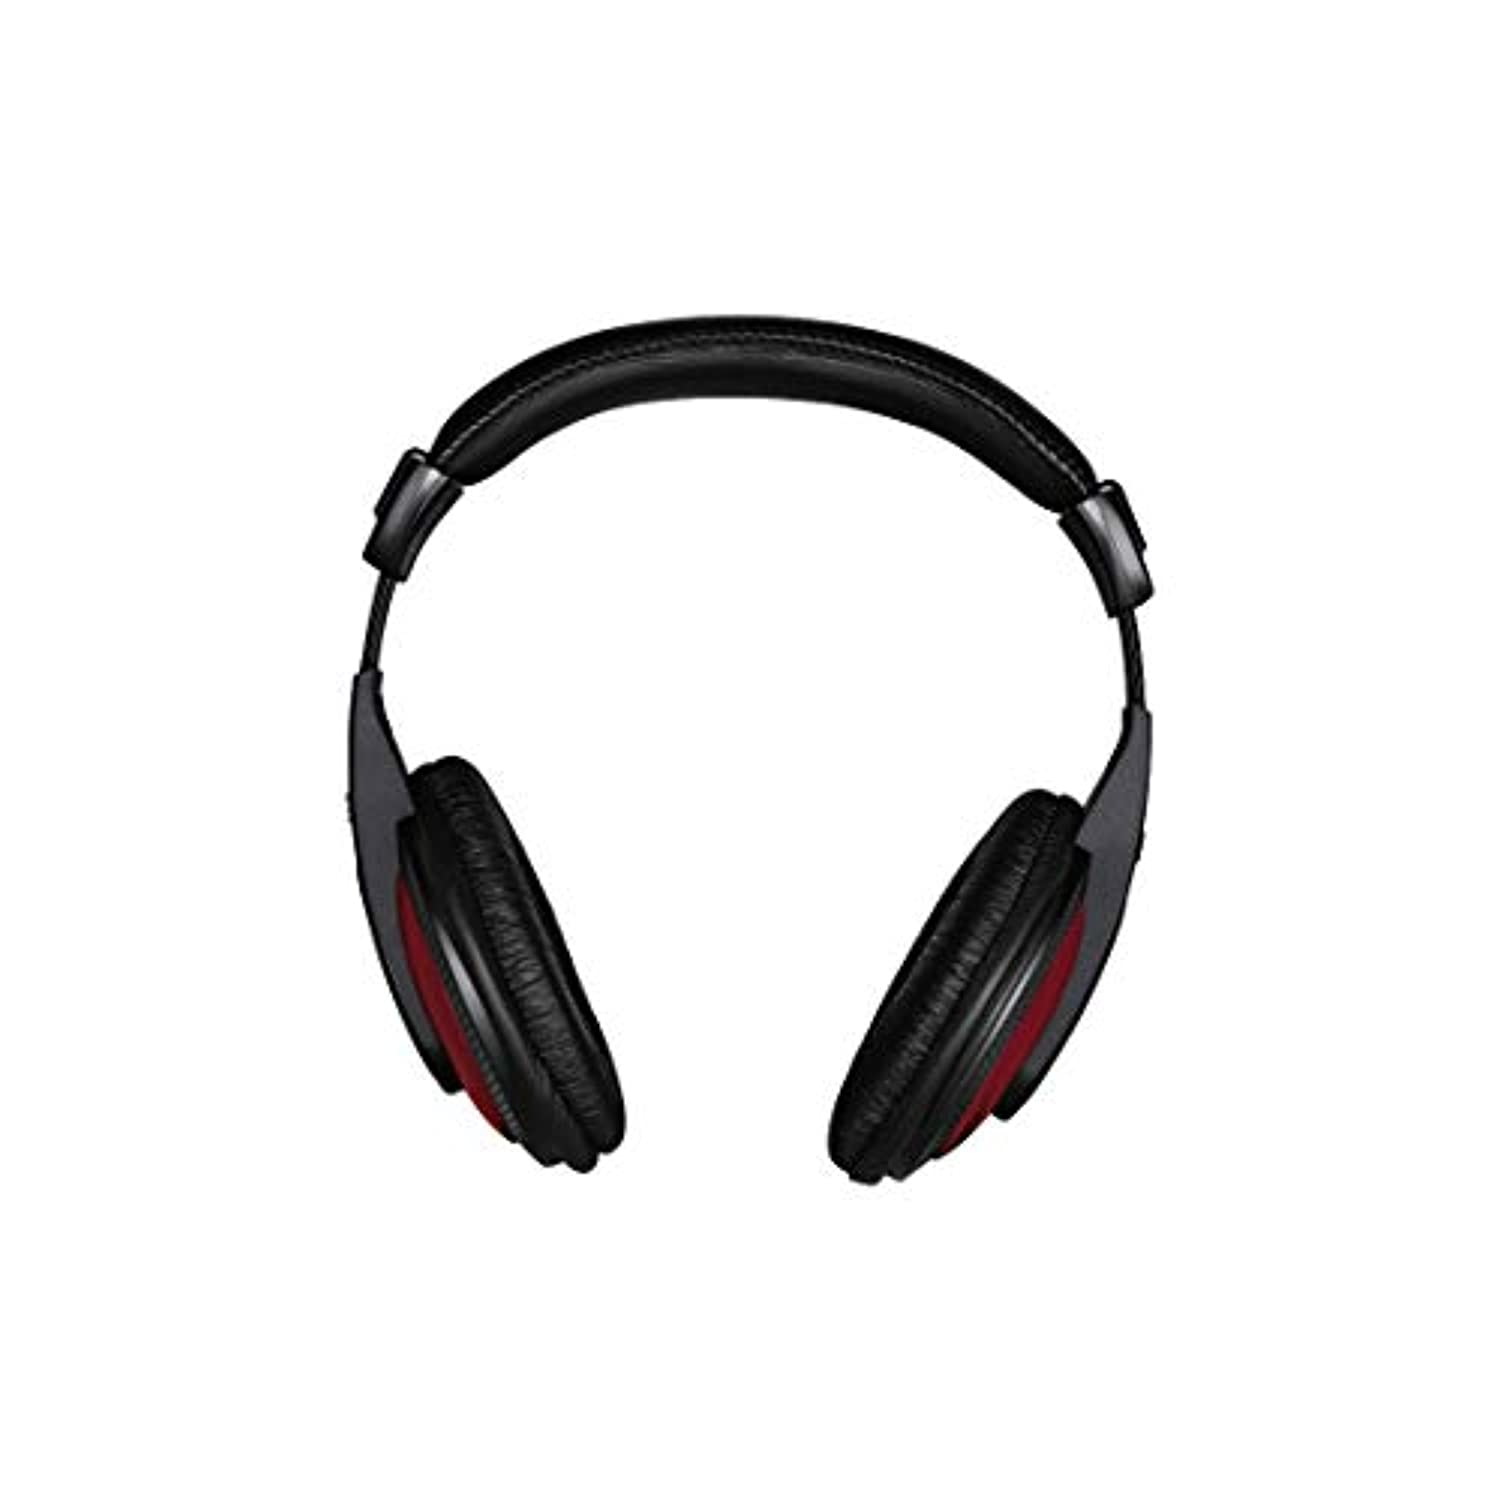 Hama Basic4Music Over-Ear Stereo Headphones - smrt-life.com